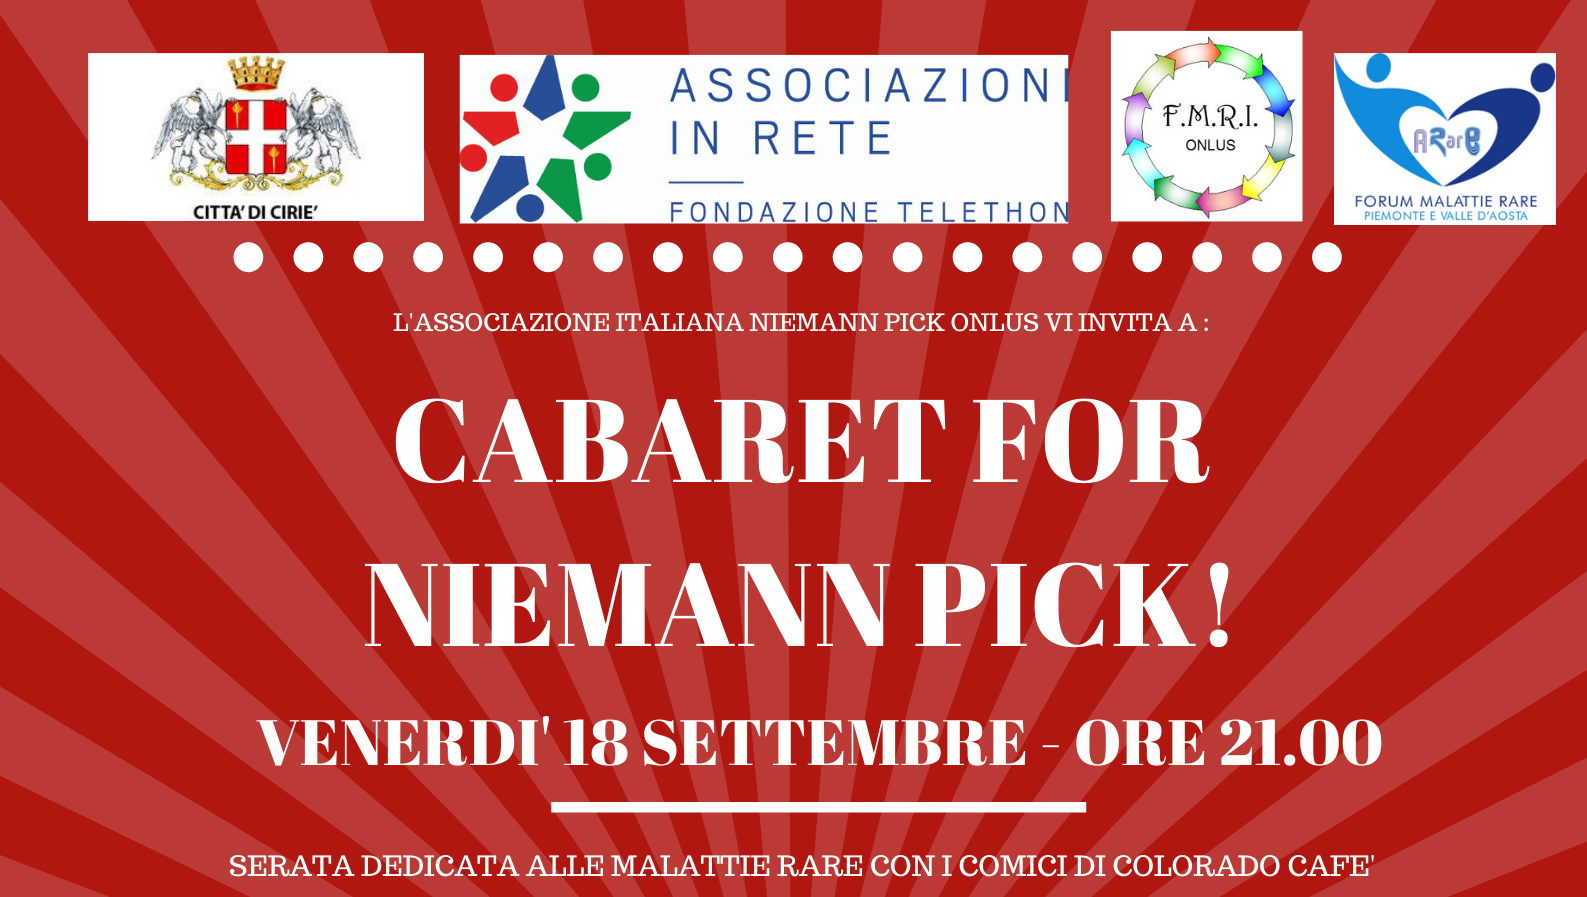 CABARET FOR NIEMANN PICK!